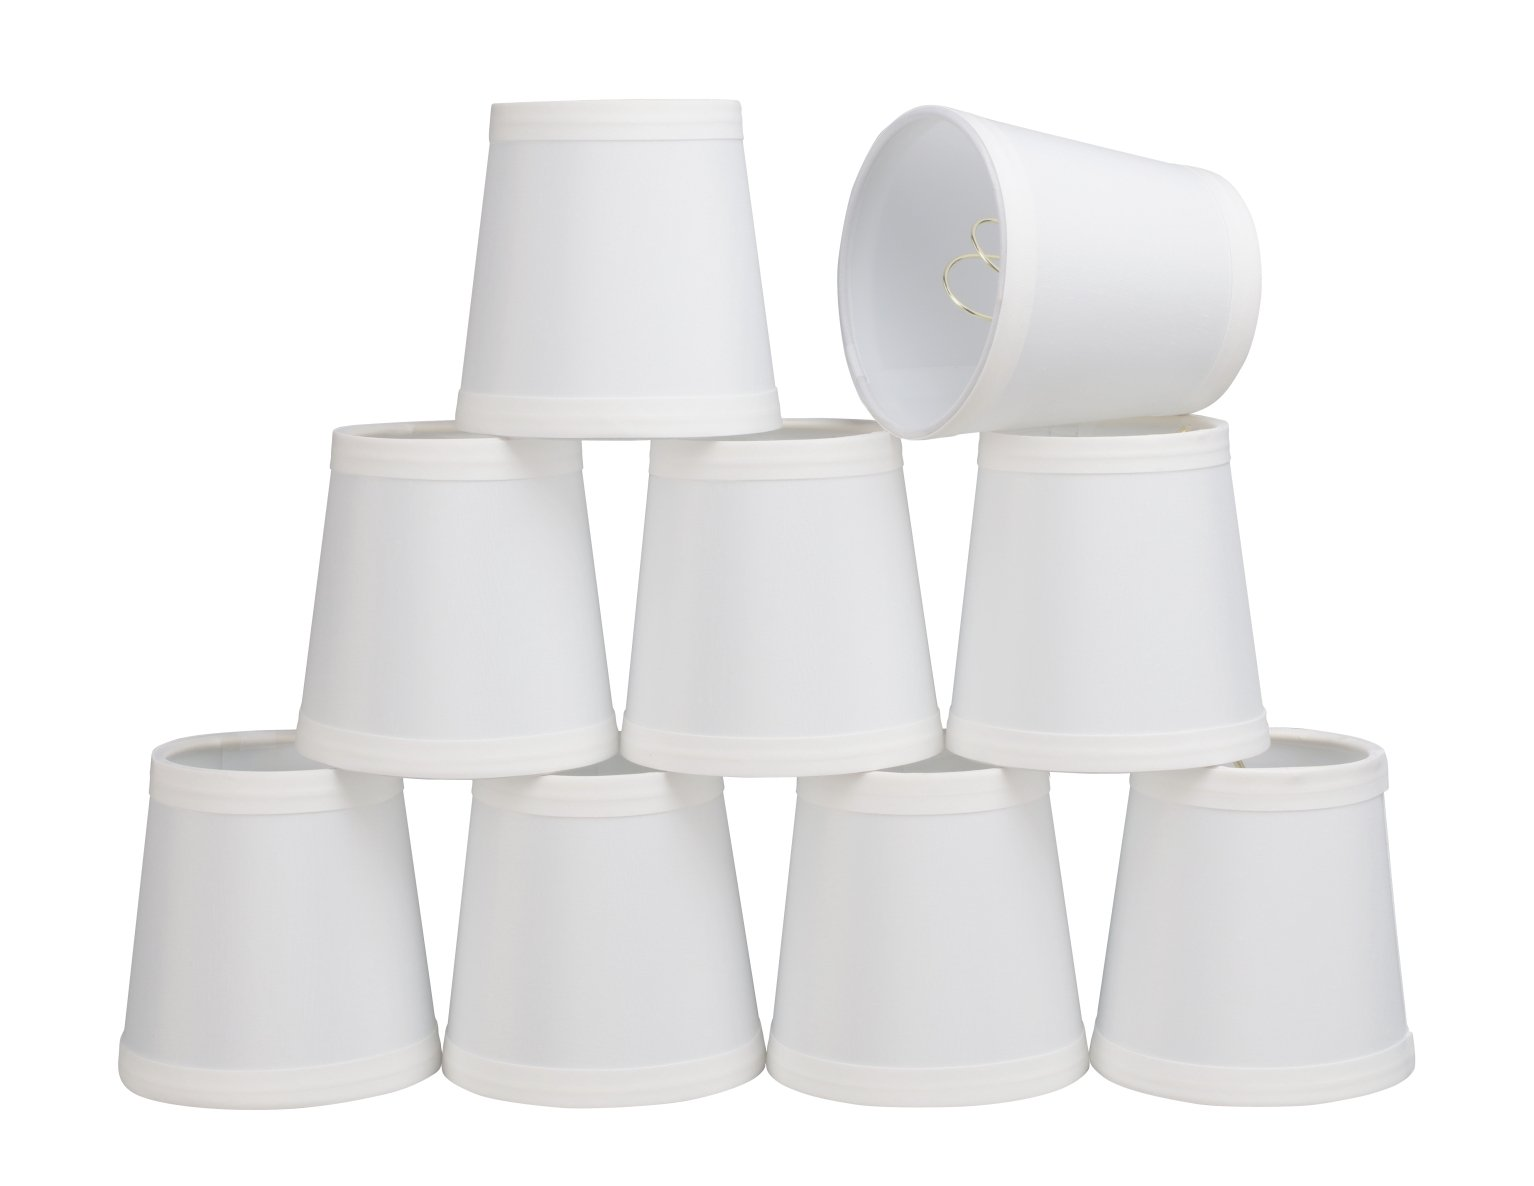 32047-9 Small Hardback Empire Shape Chandelier Clip-On Lamp Shade Set (9 Pack), Transitional Design in Off-White, 4'' bottom width (3'' x 4'' x 4'')